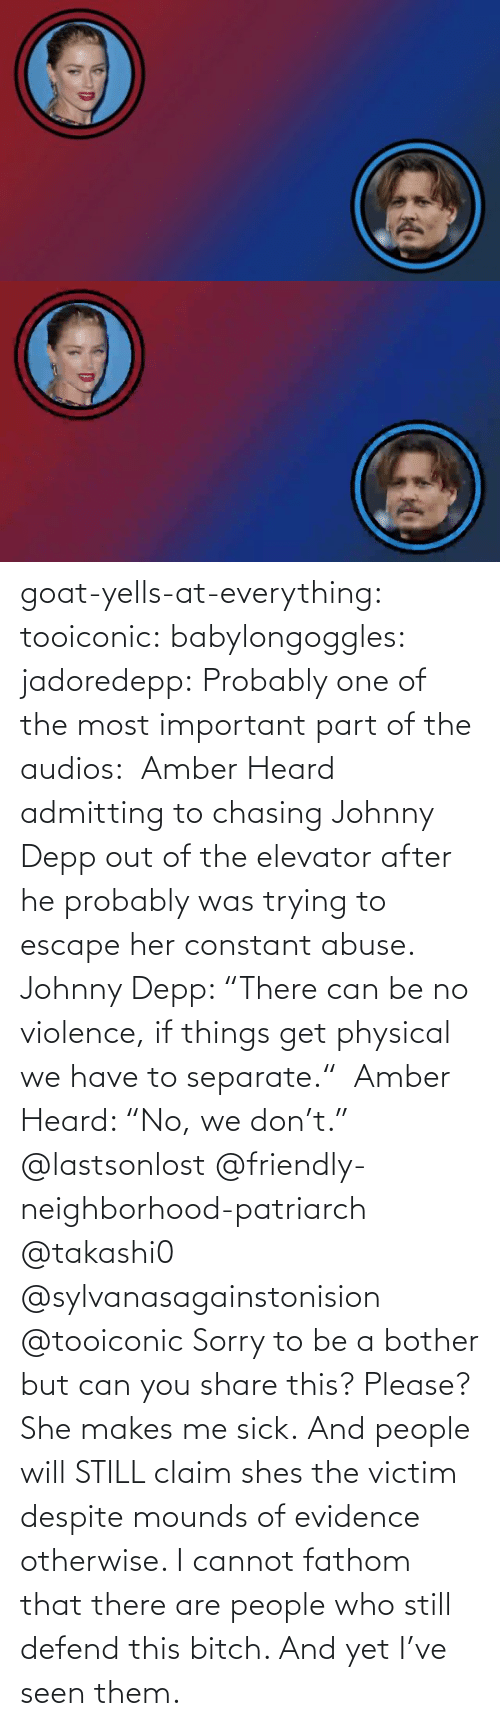 "one of the most: goat-yells-at-everything:  tooiconic:  babylongoggles:  jadoredepp:  Probably one of the most important part of the audios:  Amber Heard admitting to chasing Johnny Depp out of the elevator after he probably was trying to escape her constant abuse.  Johnny Depp: ""There can be no violence, if things get physical we have to separate.""  Amber Heard: ""No, we don't.""  @lastsonlost @friendly-neighborhood-patriarch @takashi0 @sylvanasagainstonision @tooiconic Sorry to be a bother but can you share this? Please?   She makes me sick.   And people will STILL claim shes the victim despite mounds of evidence otherwise.    I cannot fathom that there are people who still defend this bitch. And yet I've seen them."